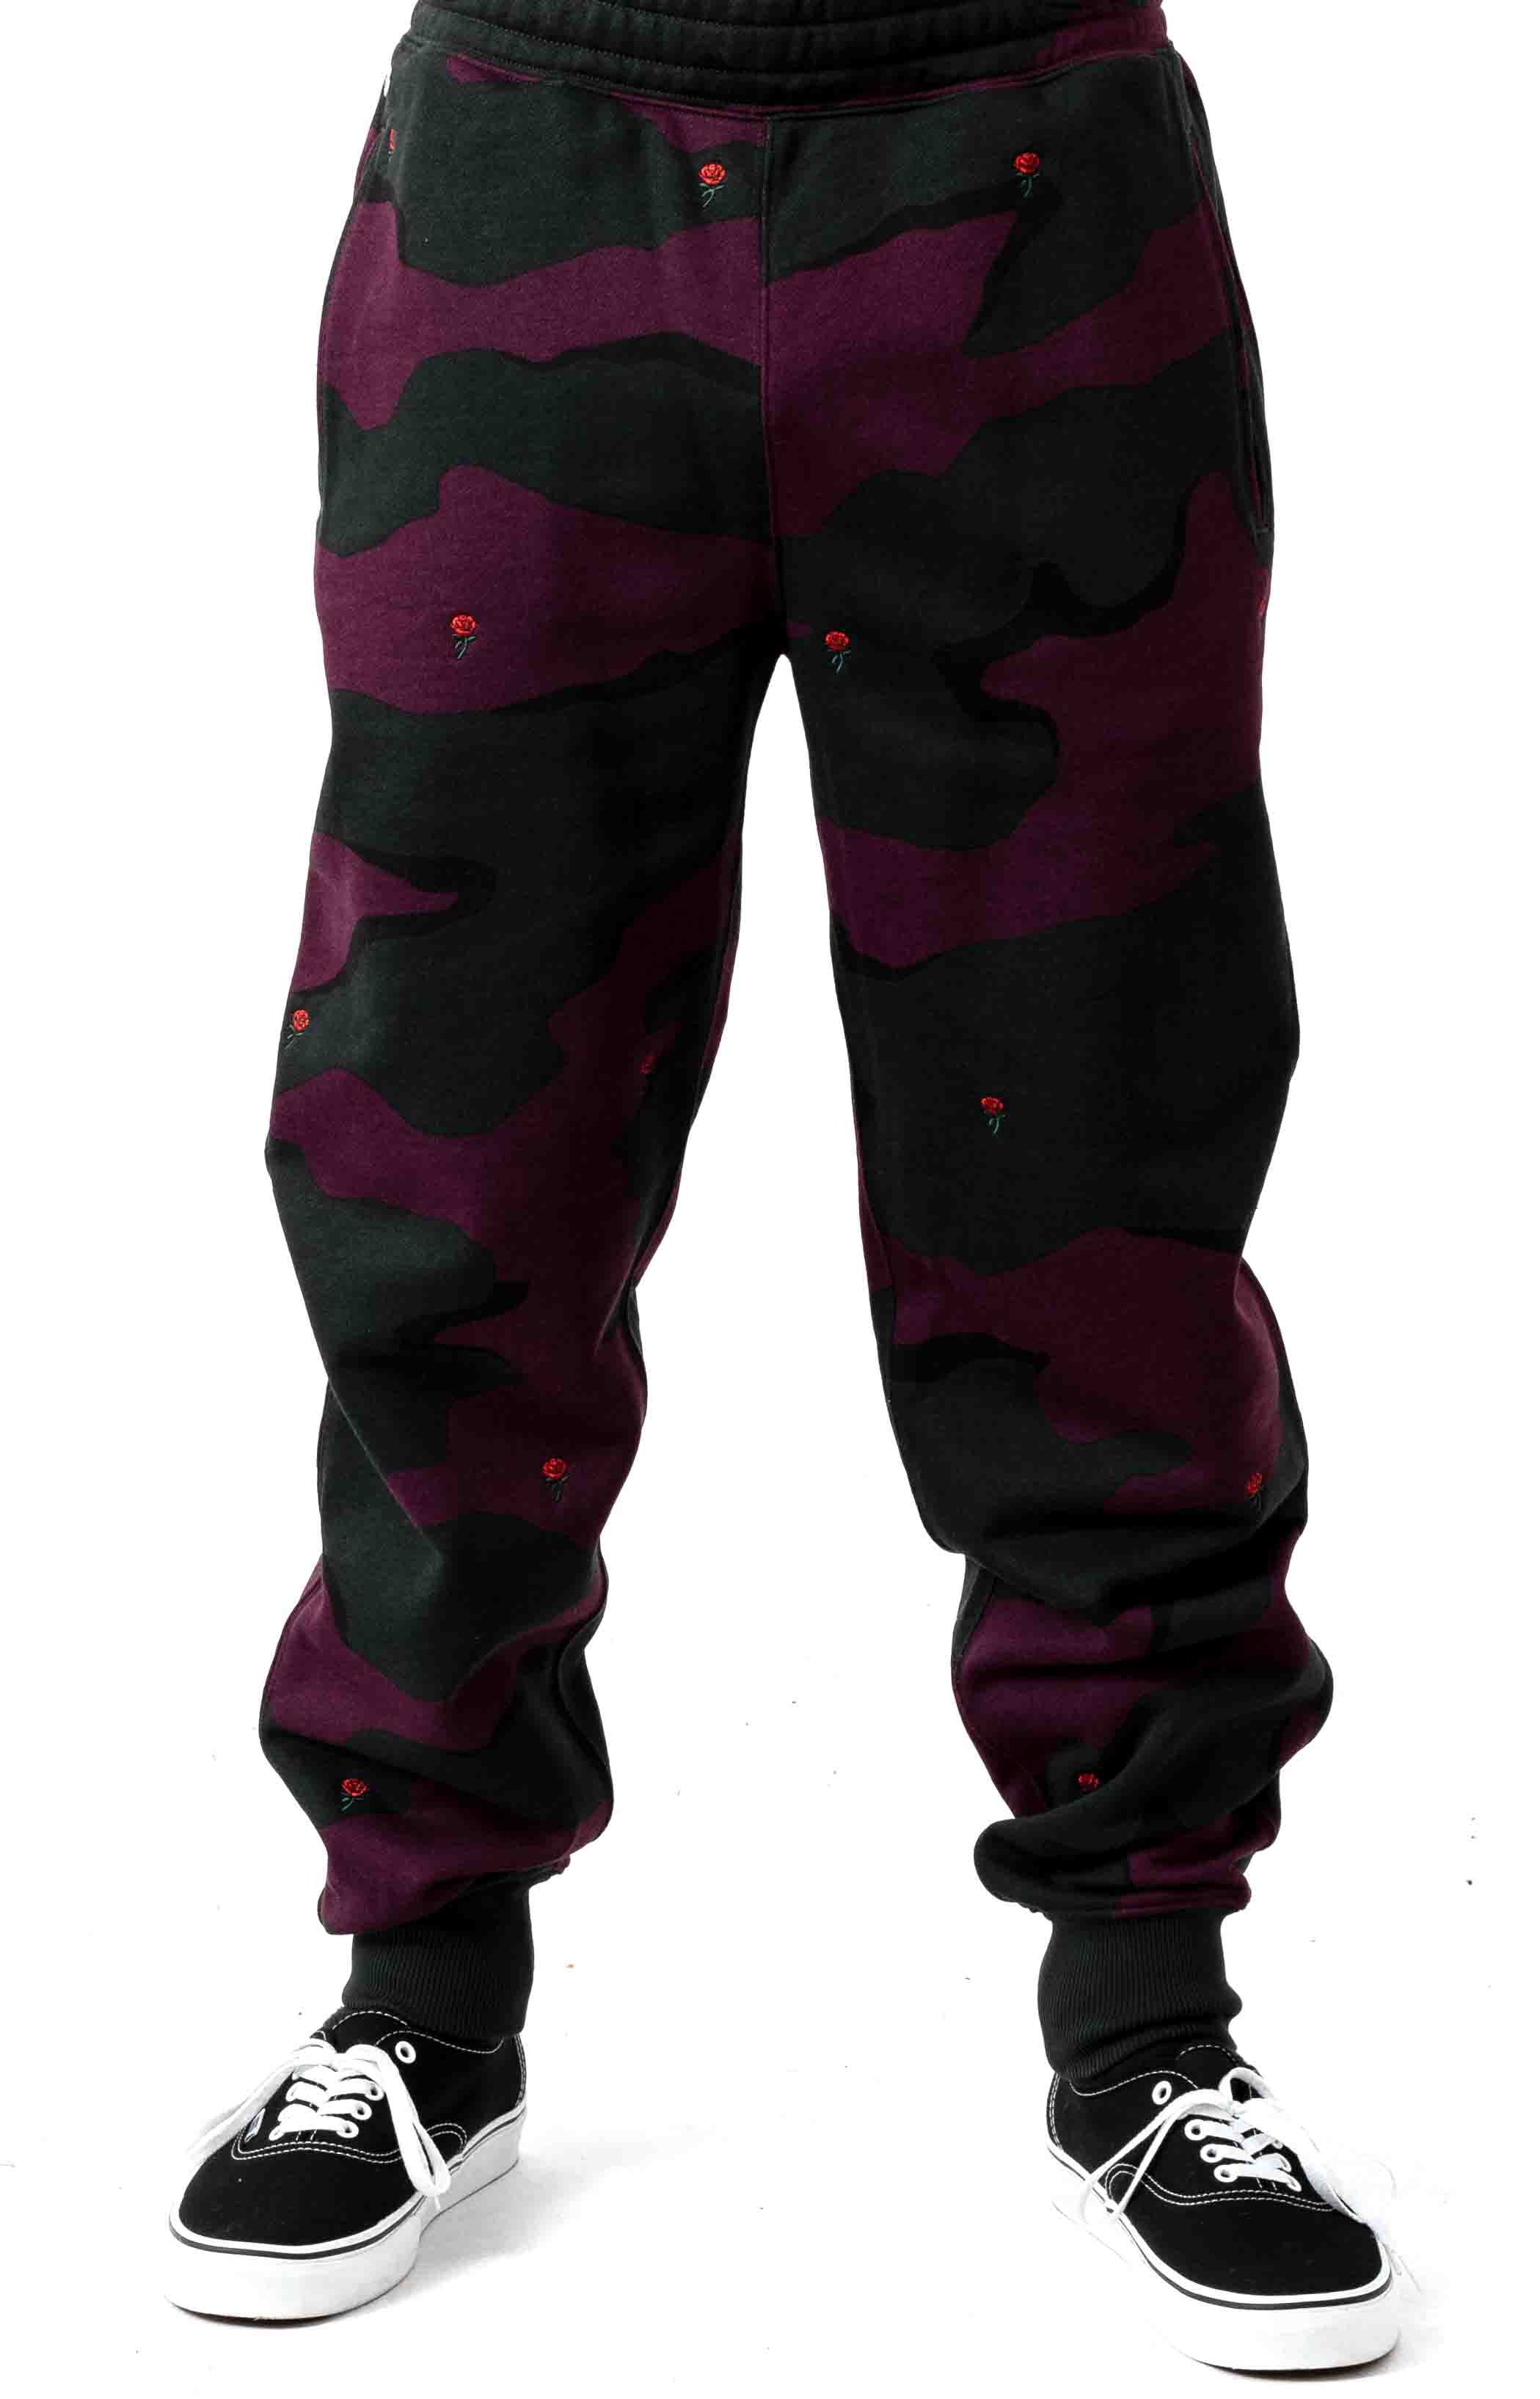 Live Rose Embroidered Camo Sweatpant - Green/White  2